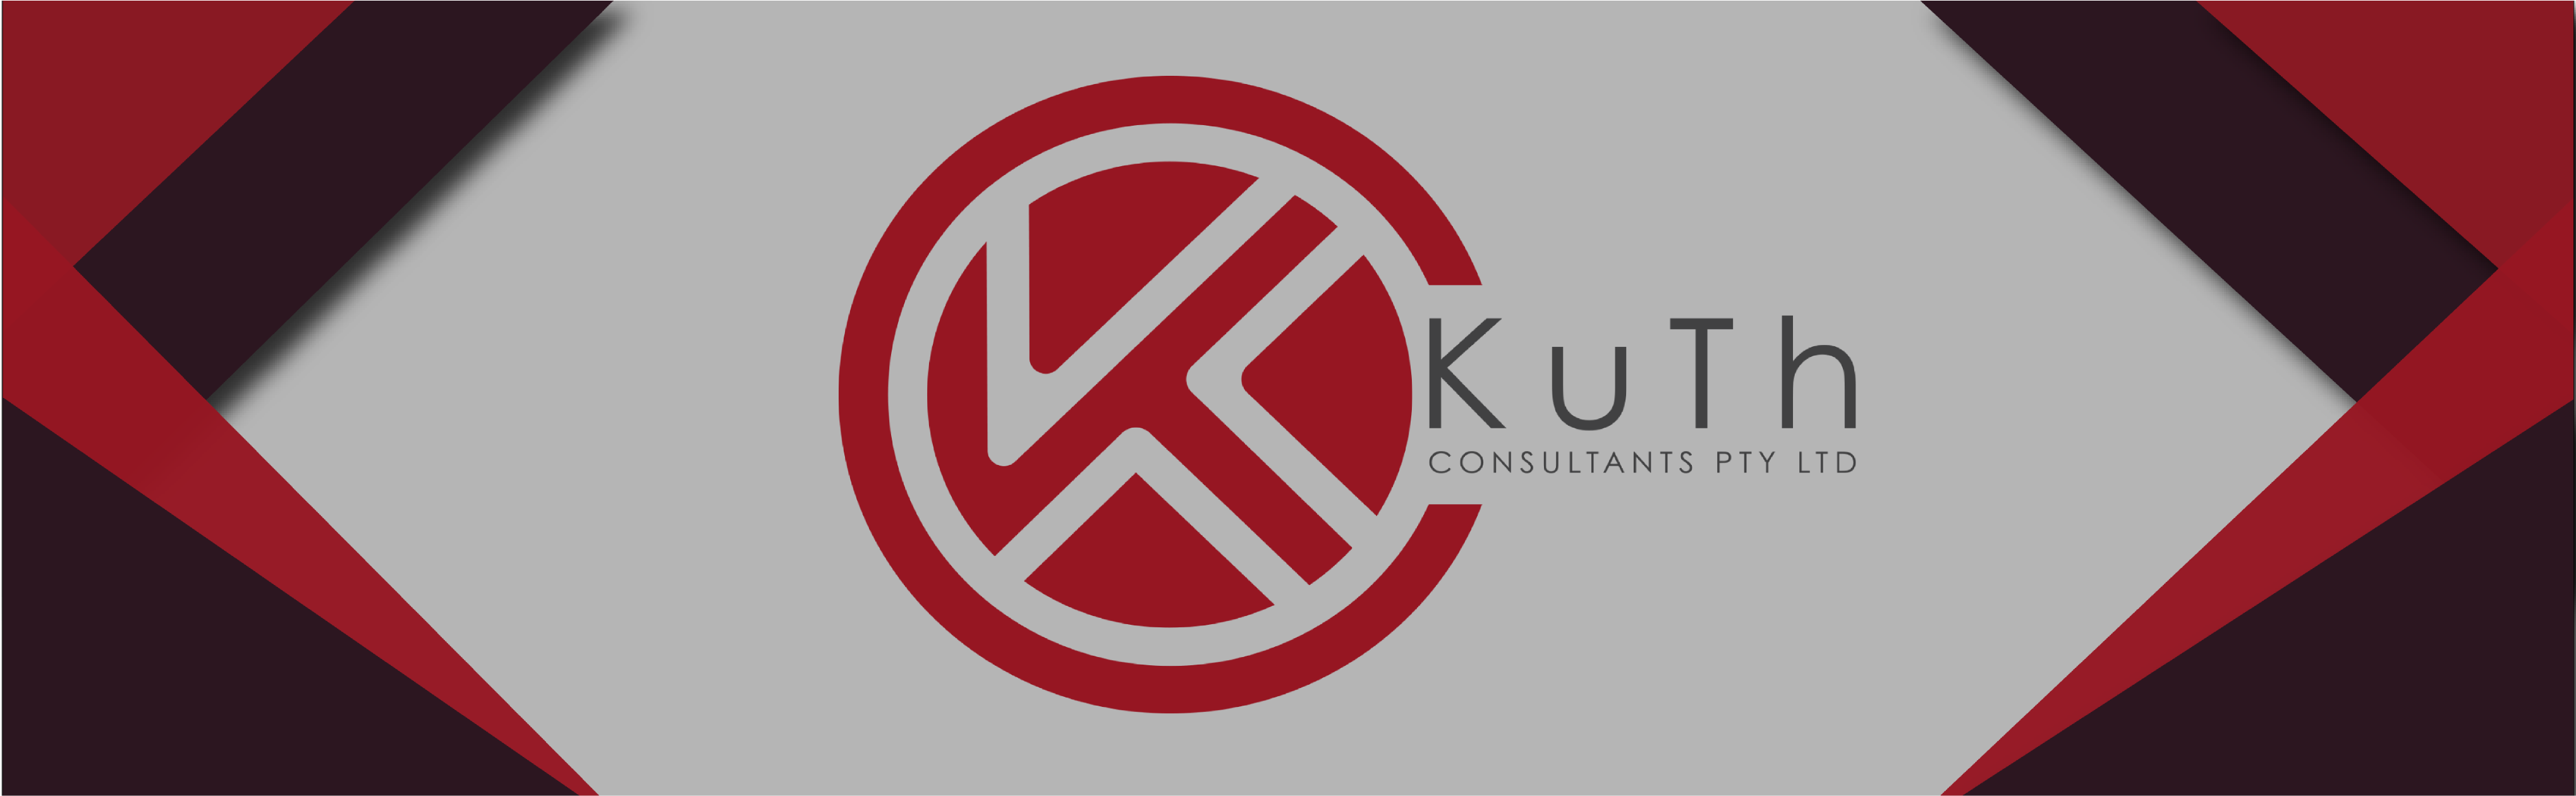 Kuth Consultants Logo